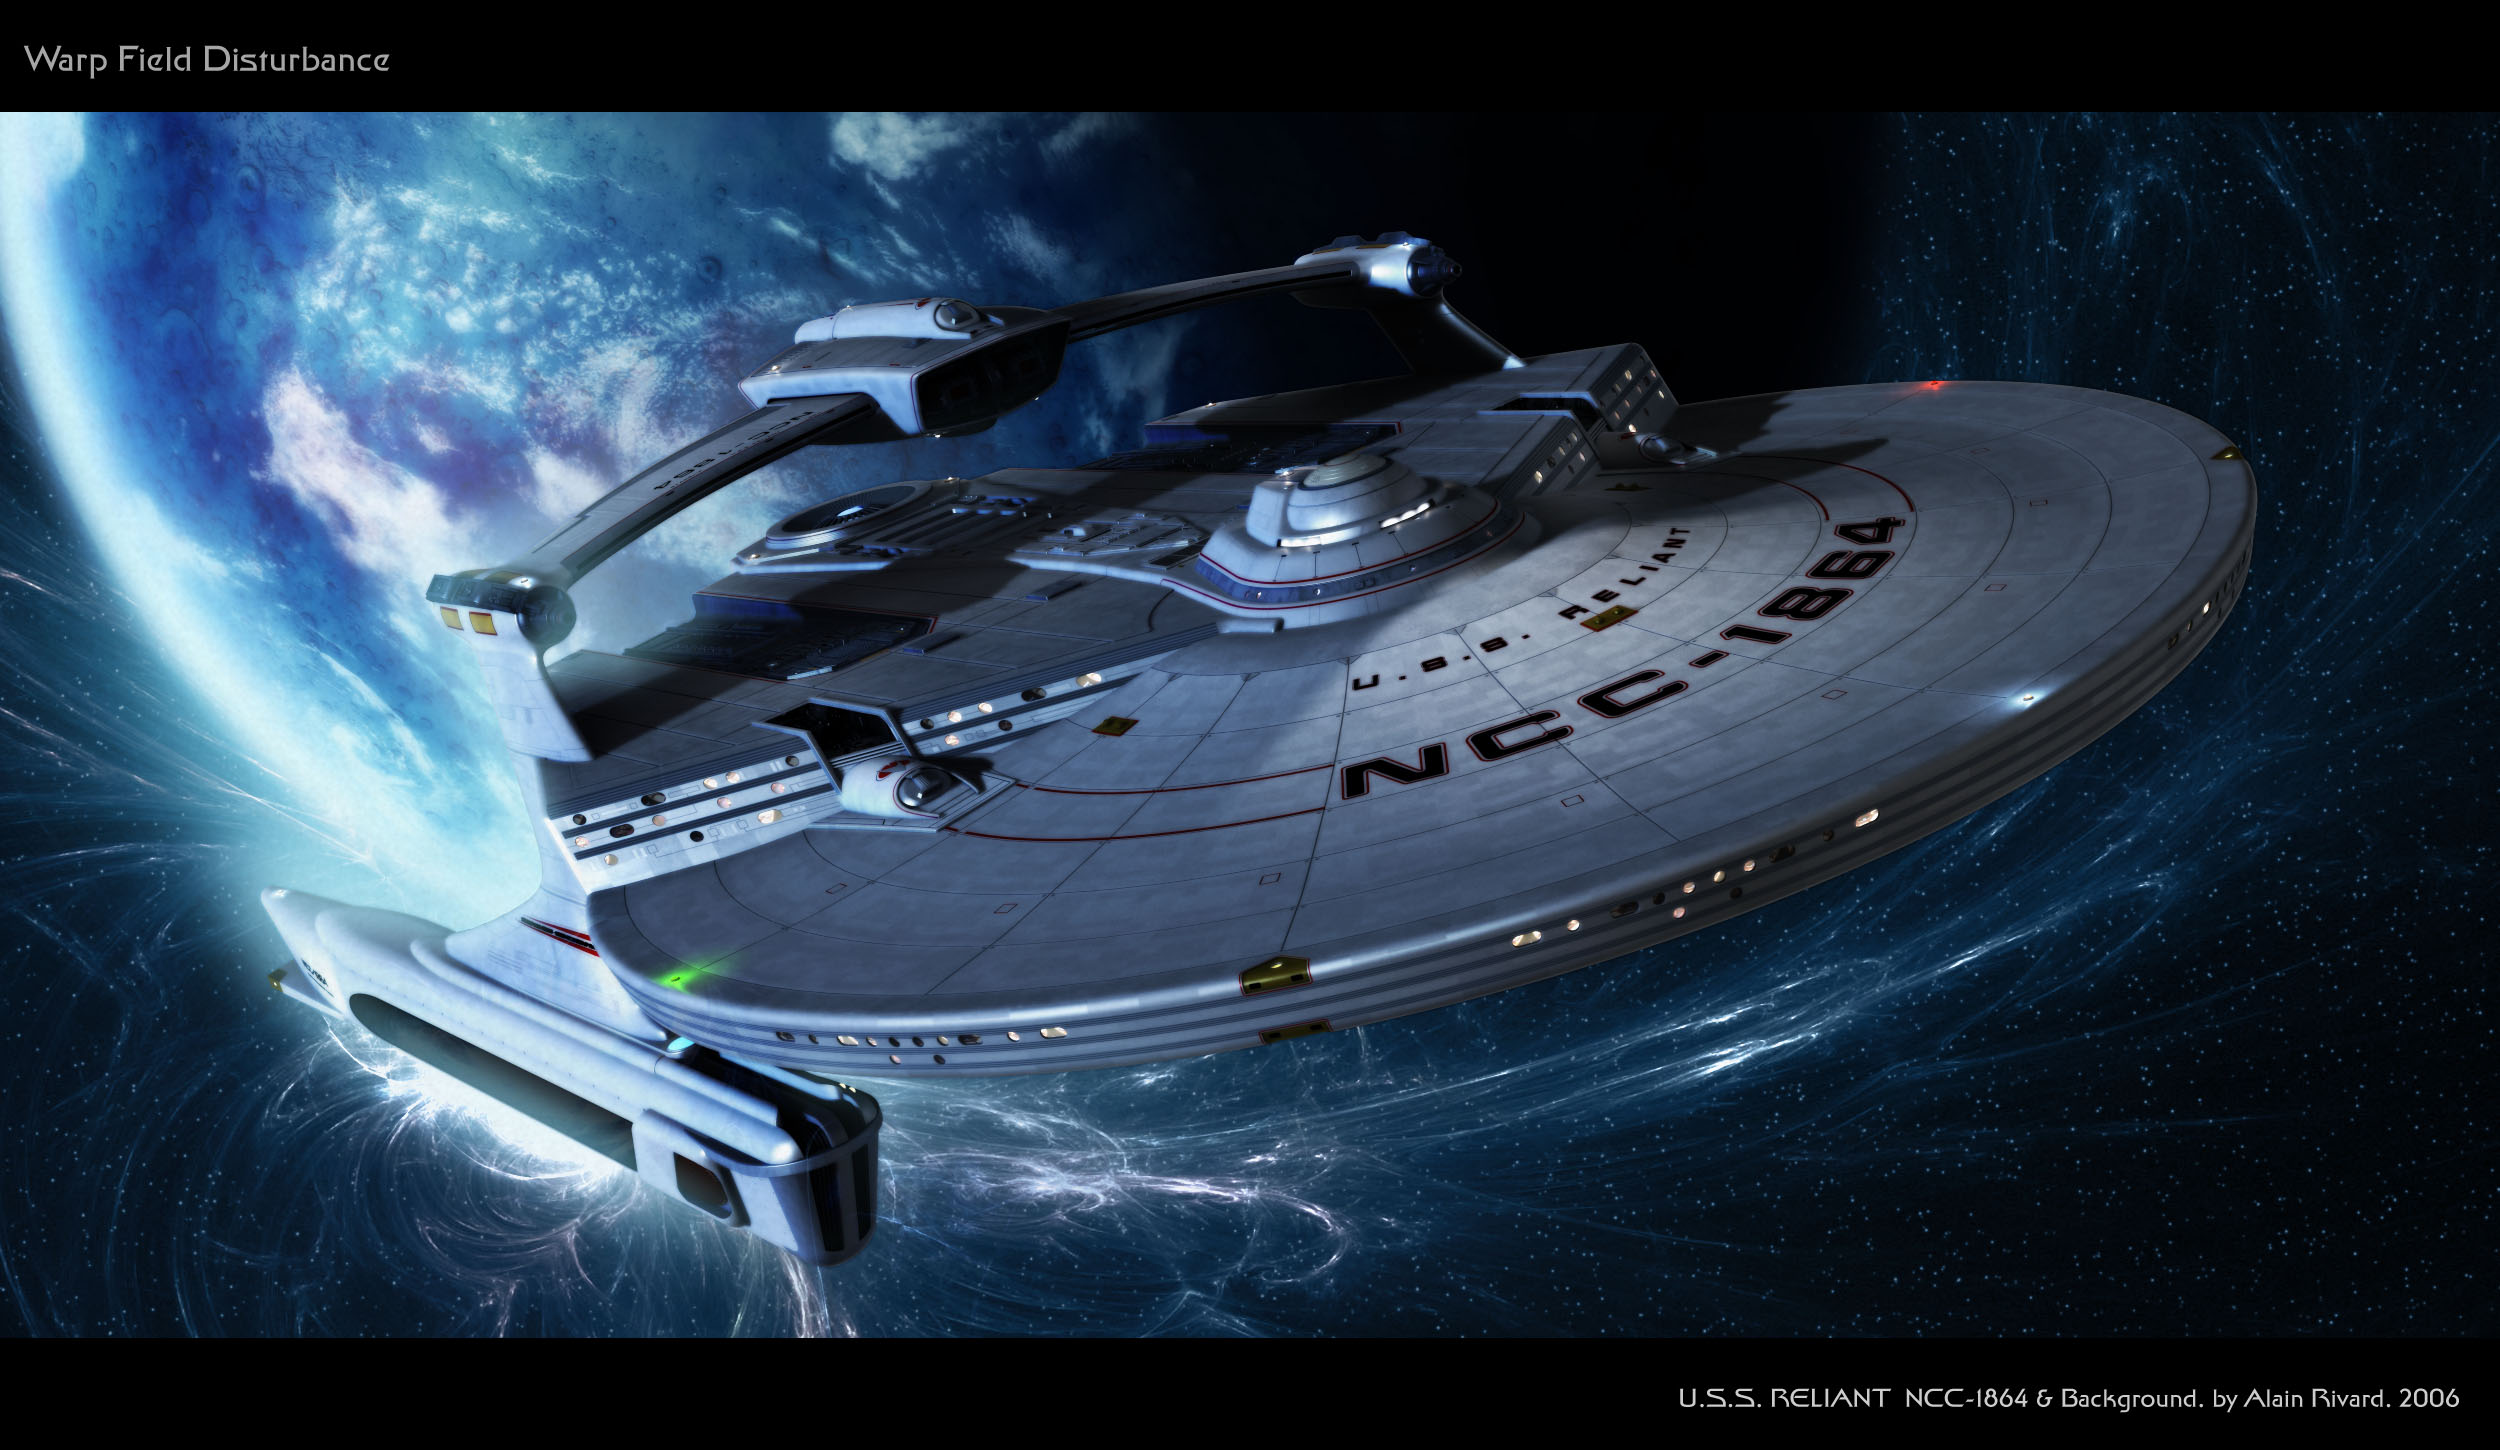 Star Trek wallpapers wallpaper images TV shows sci fi pictures scifi 2500x1450